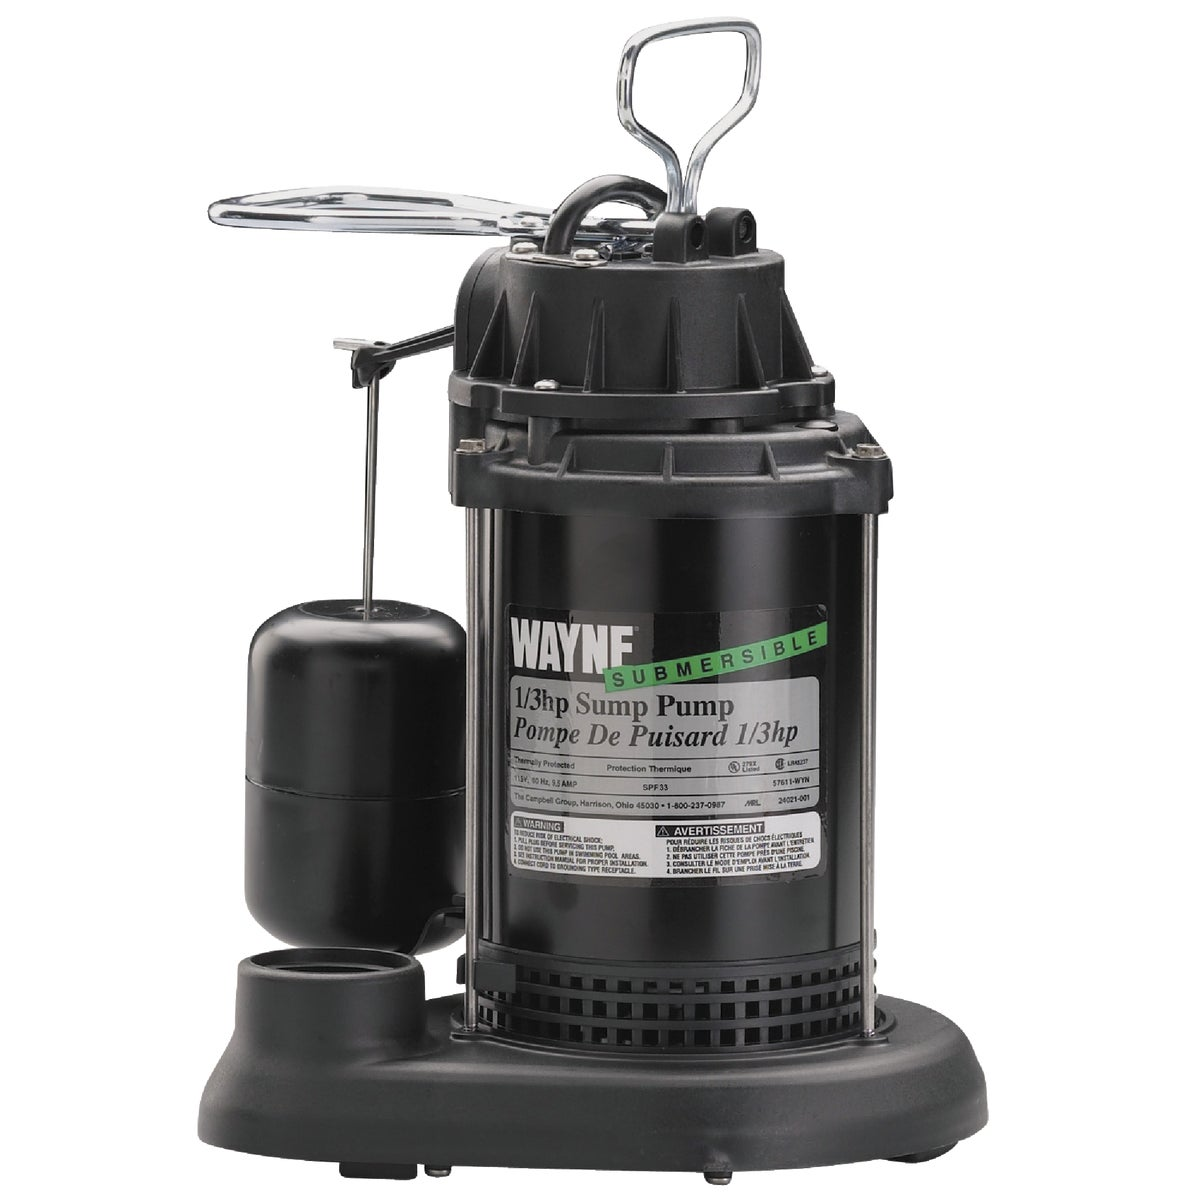 1/3HP PLASTIC SUMP PUMP - SPF33-57610 by Wayne Water Systems